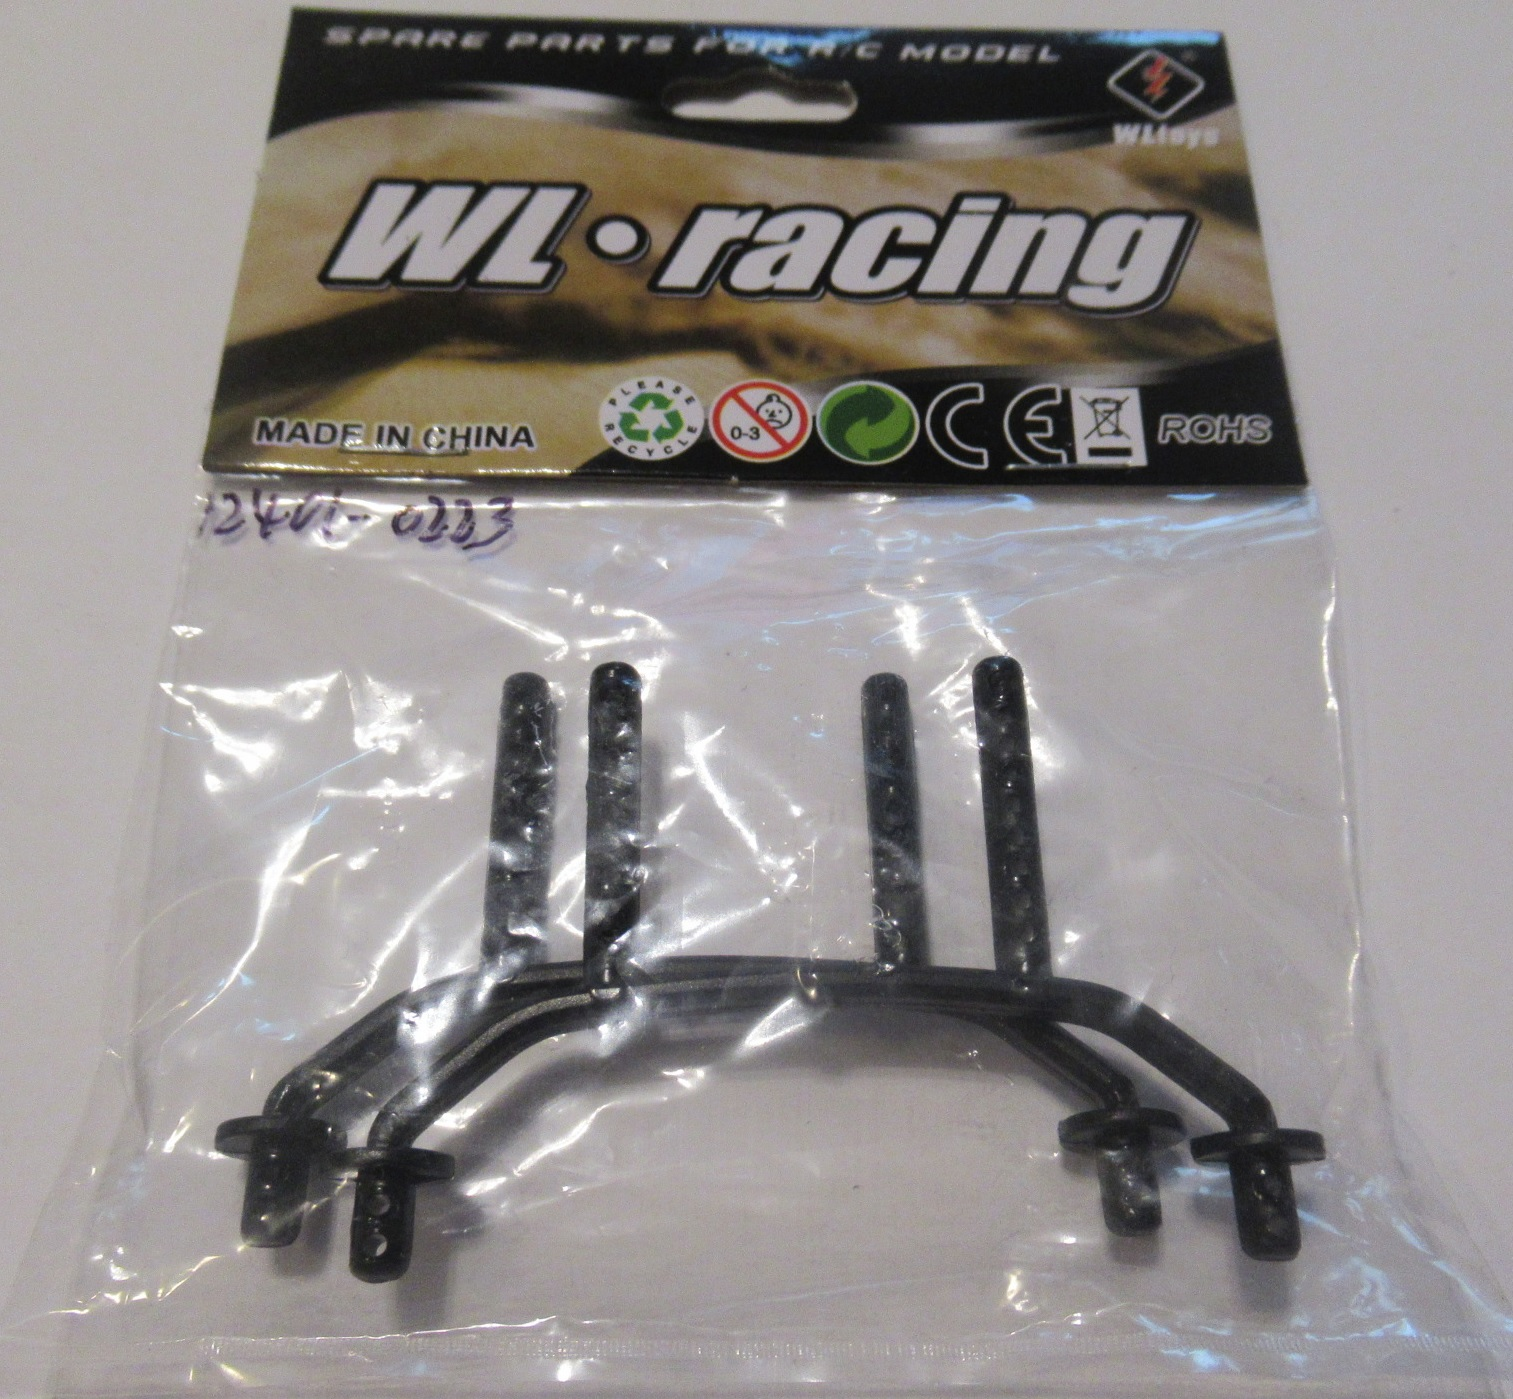 WL Racing 12401, 12402, 12403 Rc Car spare parts, Nummer 12401-0223